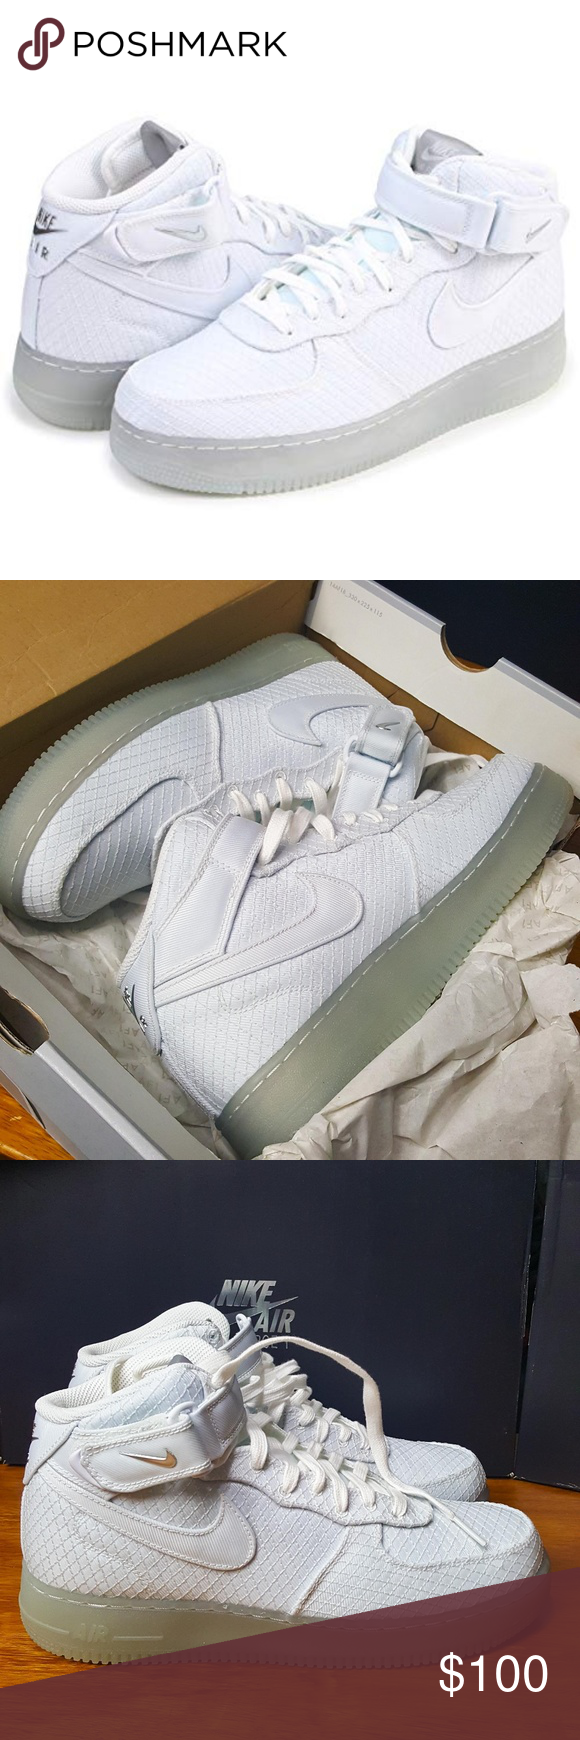 info for 91815 42985 Nike Air Force 1 Mid  07 804609-12 White  NK002  Nike Air